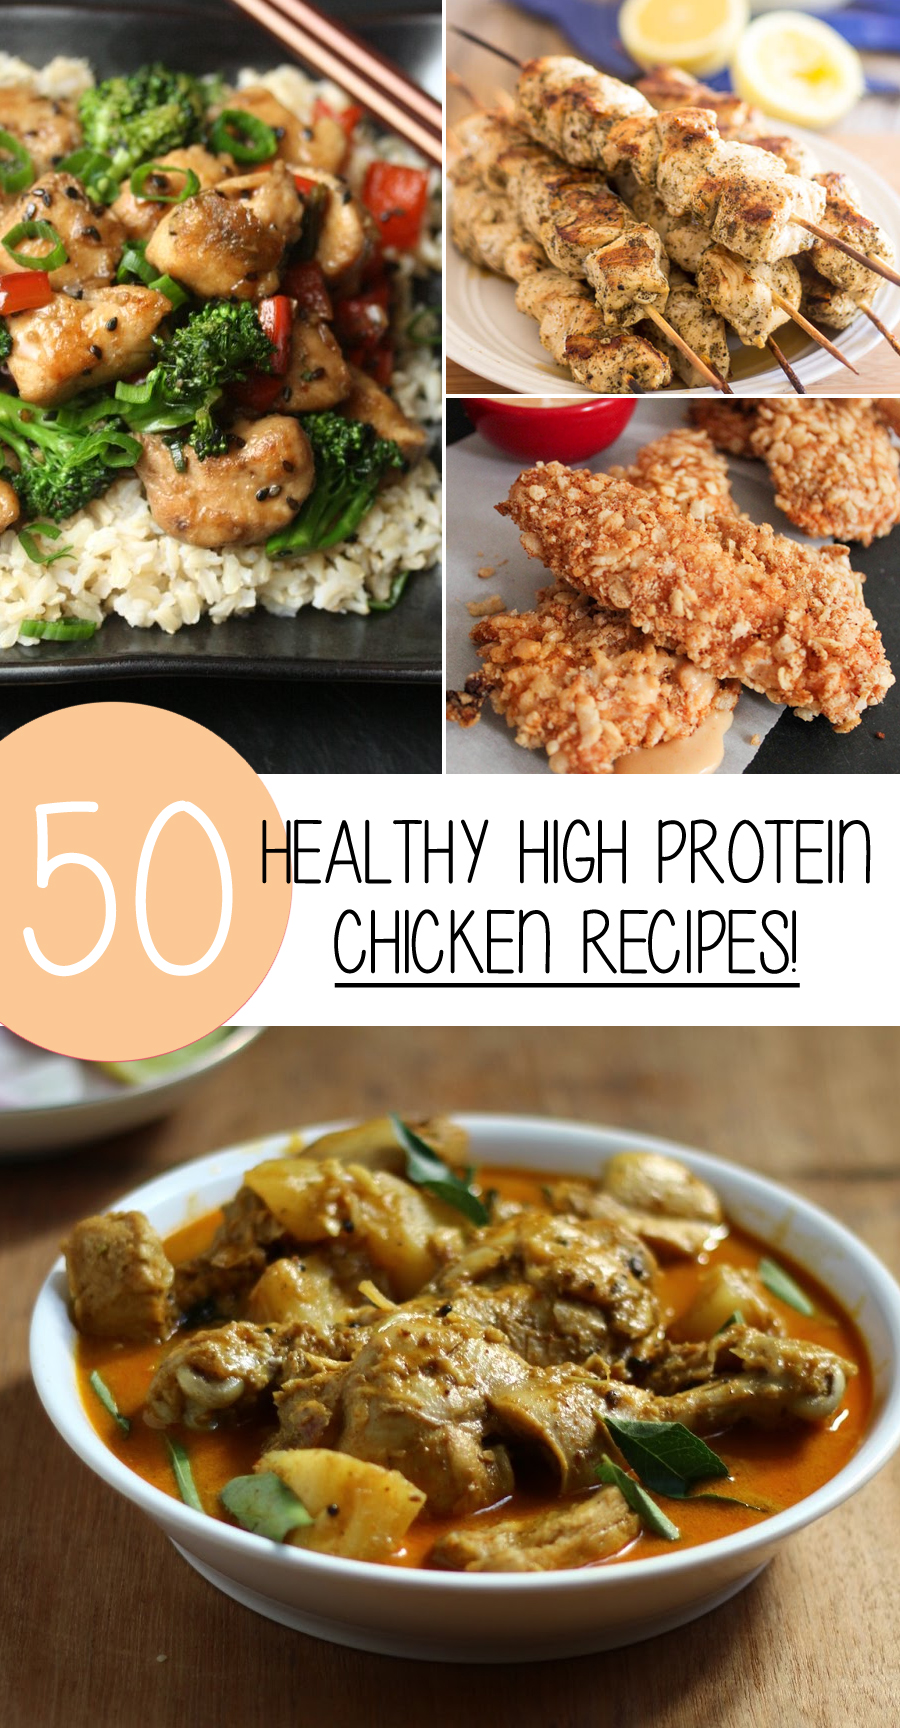 50 high protein chicken recipes that are healthy and delicious 50 healthy chicken recipes forumfinder